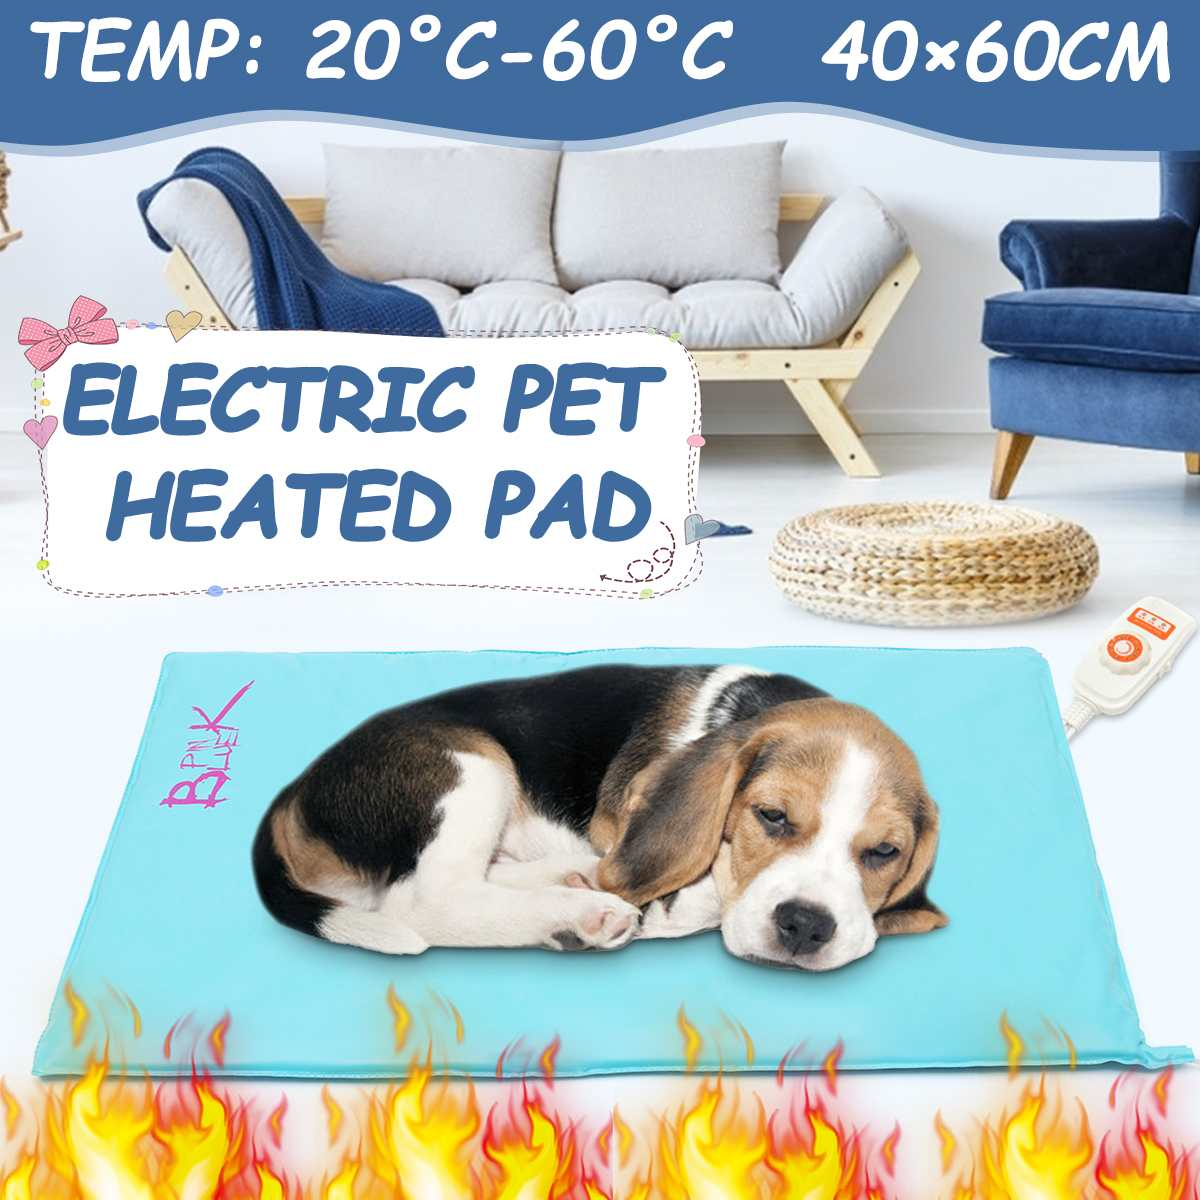 Electric Heating Pet Bed Adjustable Heating Pads Waterproof Dog Cat Blanket Pet Bed 10 Level Heated Mat Winter Warm For Cat Dog